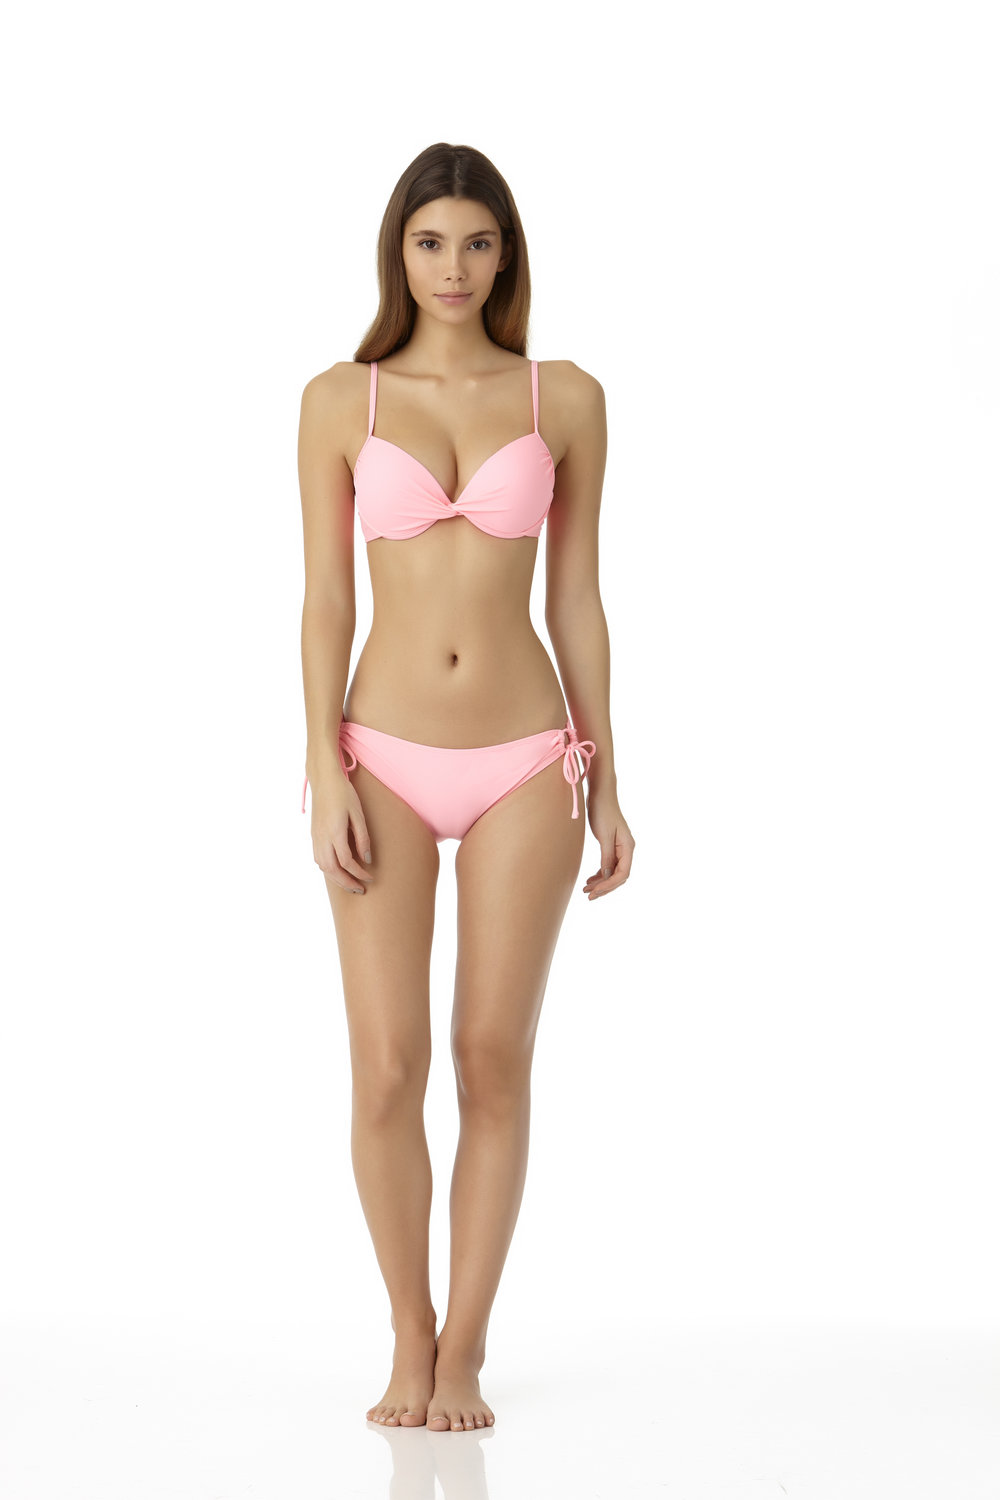 STYLE # CBC07342T/ CBC077510B - Twist Front Underwire Bikini TopCOMING SOON TO WALMARTSide Tie Scoop BottomCOMING SOON TO WALMART